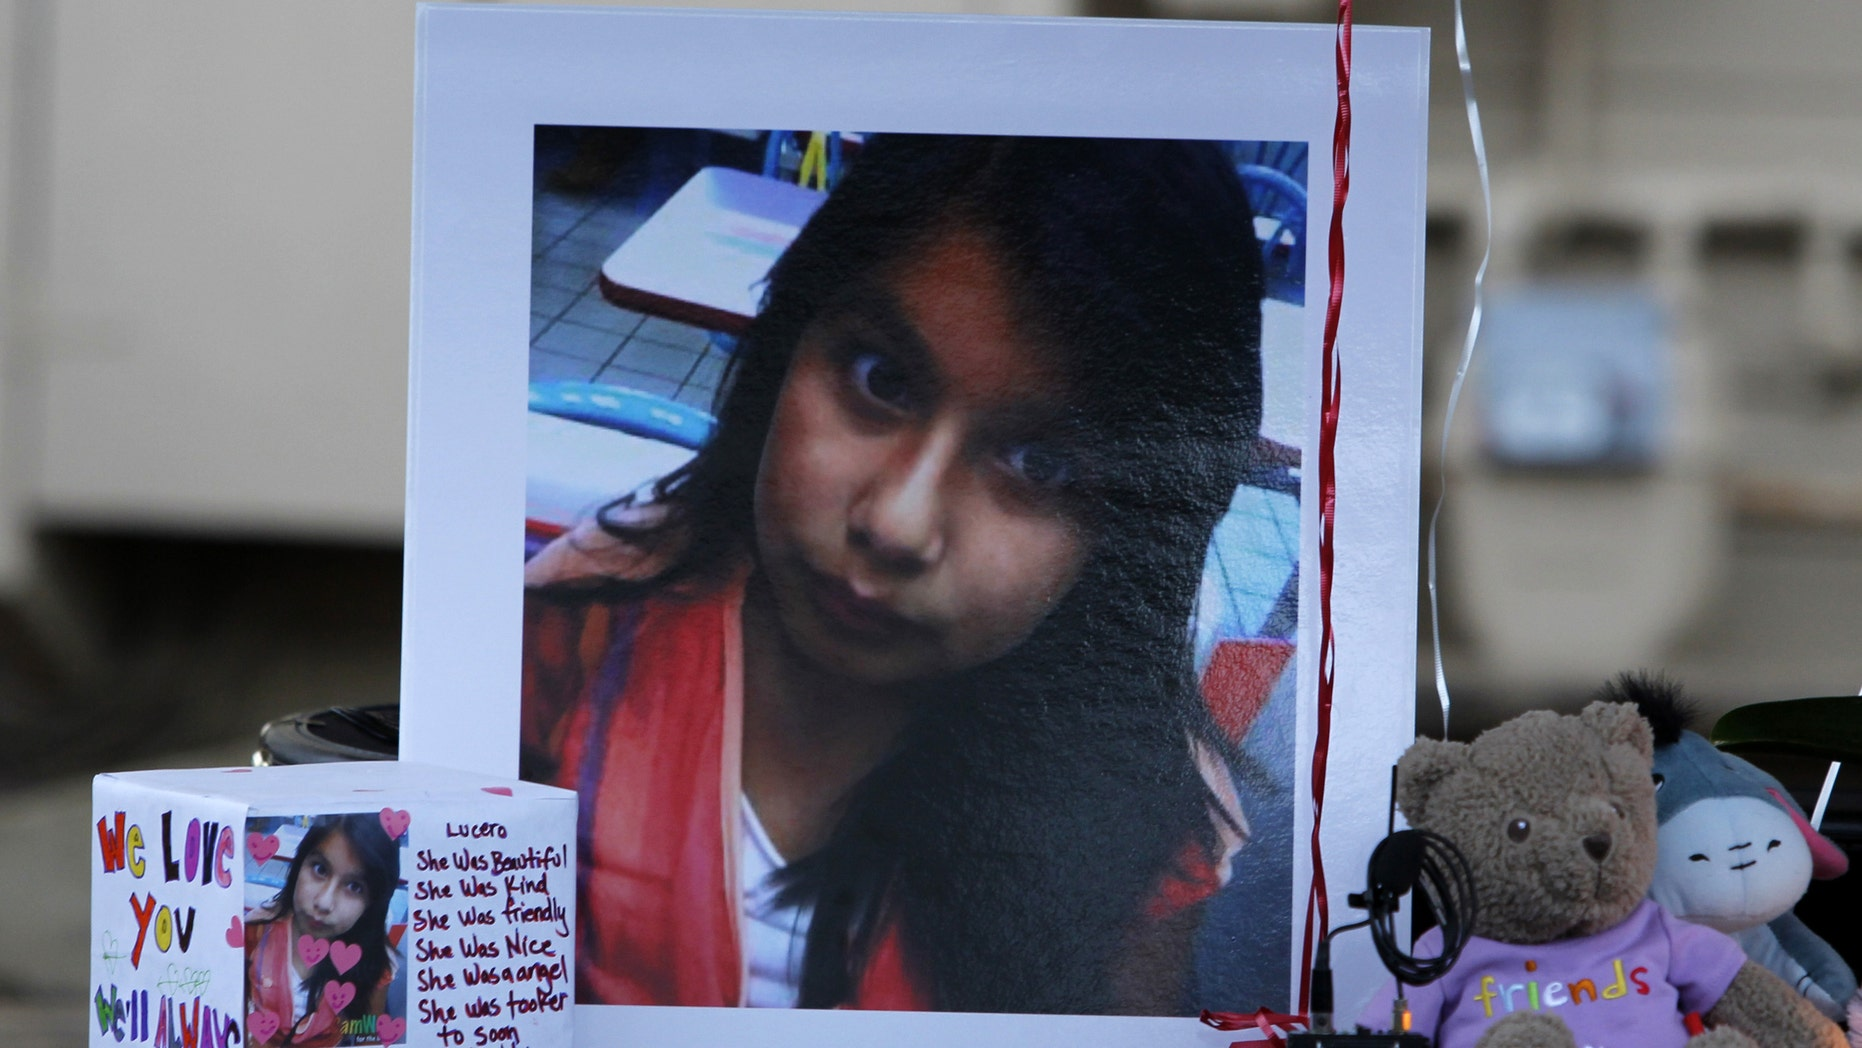 A picture of Lucero Gutierrez, an 11-year-old who was killed in a murder-suicide by her brother Abel Gutierrez, is part of a memorial in Gilroy, Calif., on Thursday, March 15, 2012.  Investigators said they were  searching for the mother of the shooter who they fear also may have been killed or seriously injured.    (AP Photo/Nhat V. Meyer/Staff)